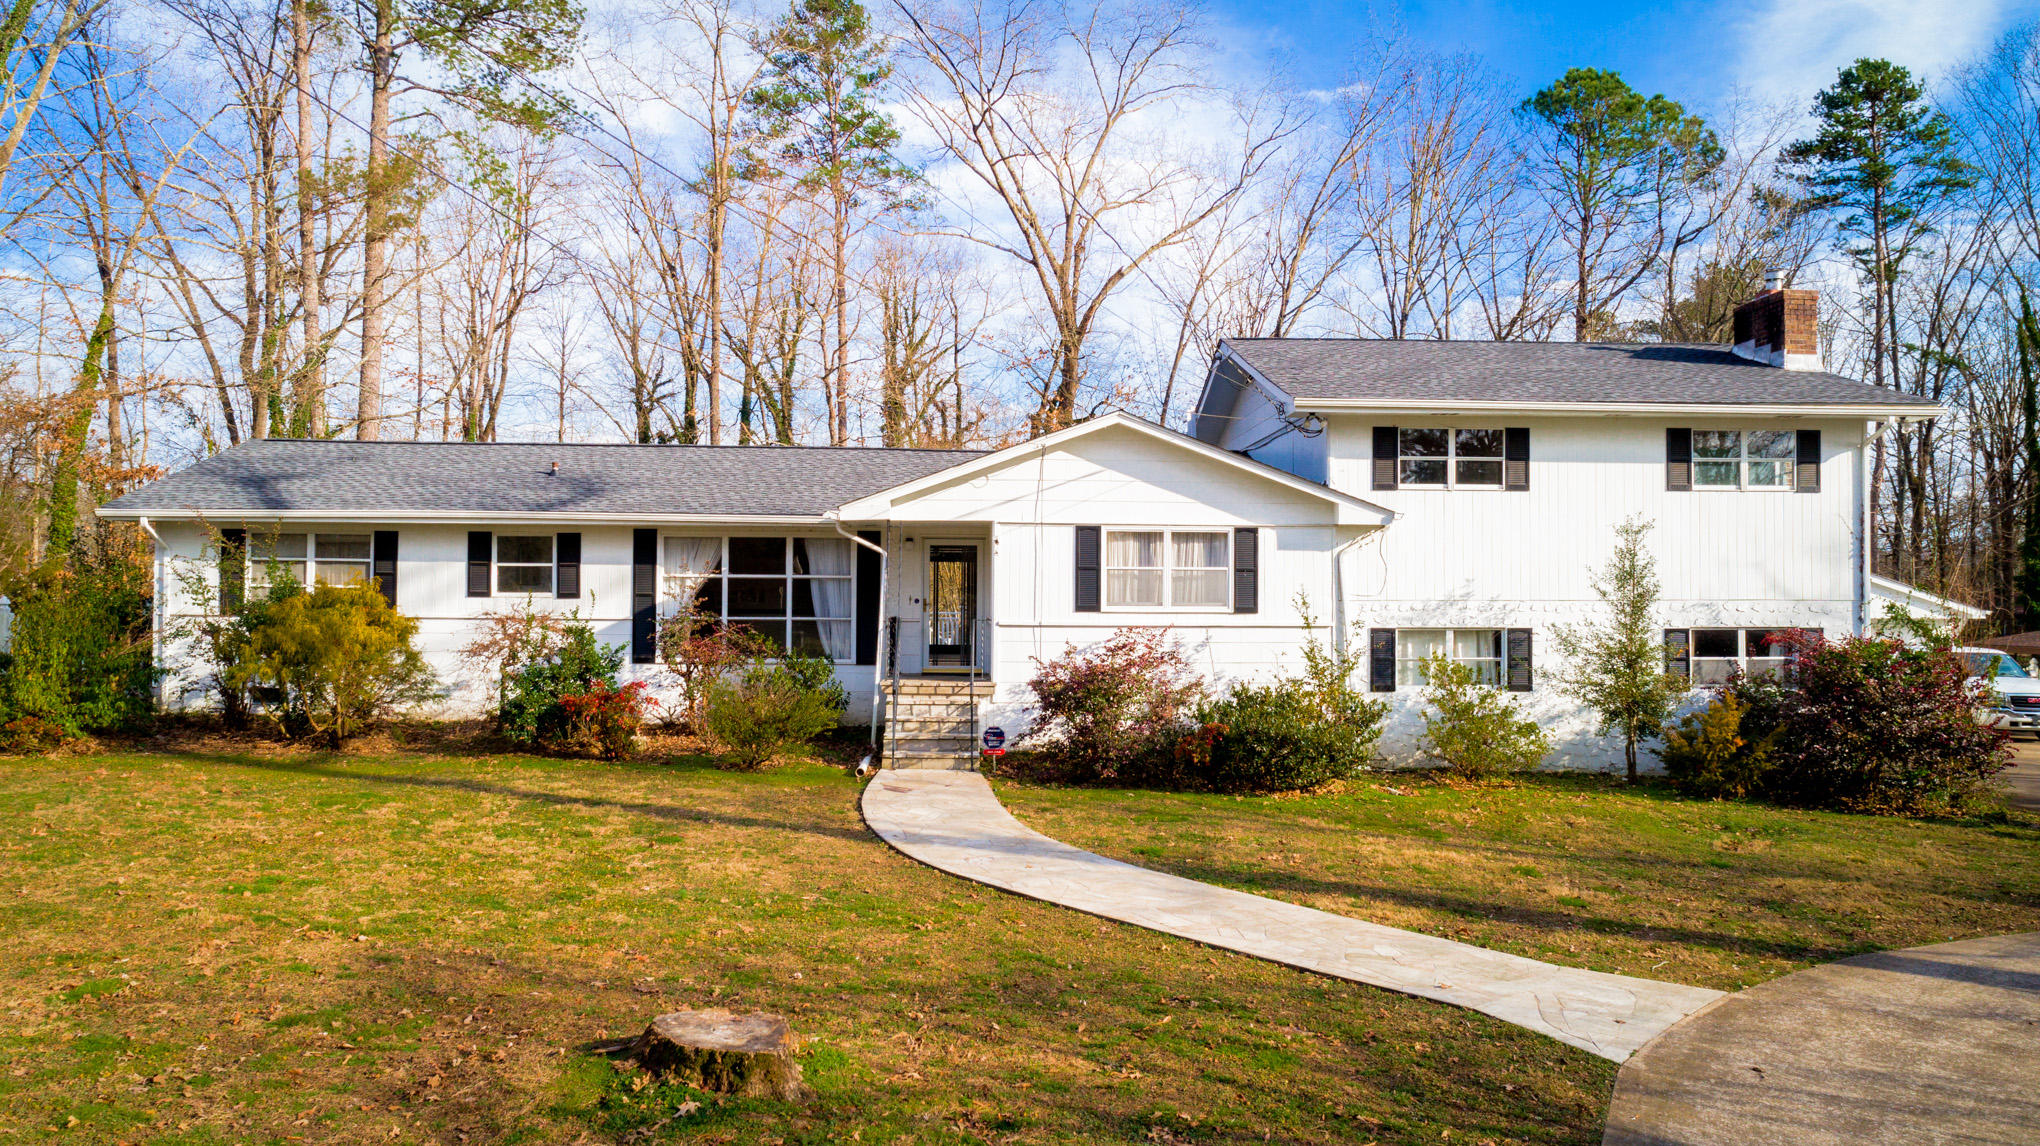 810 Lindsey Ave, Chattanooga, TN 37421